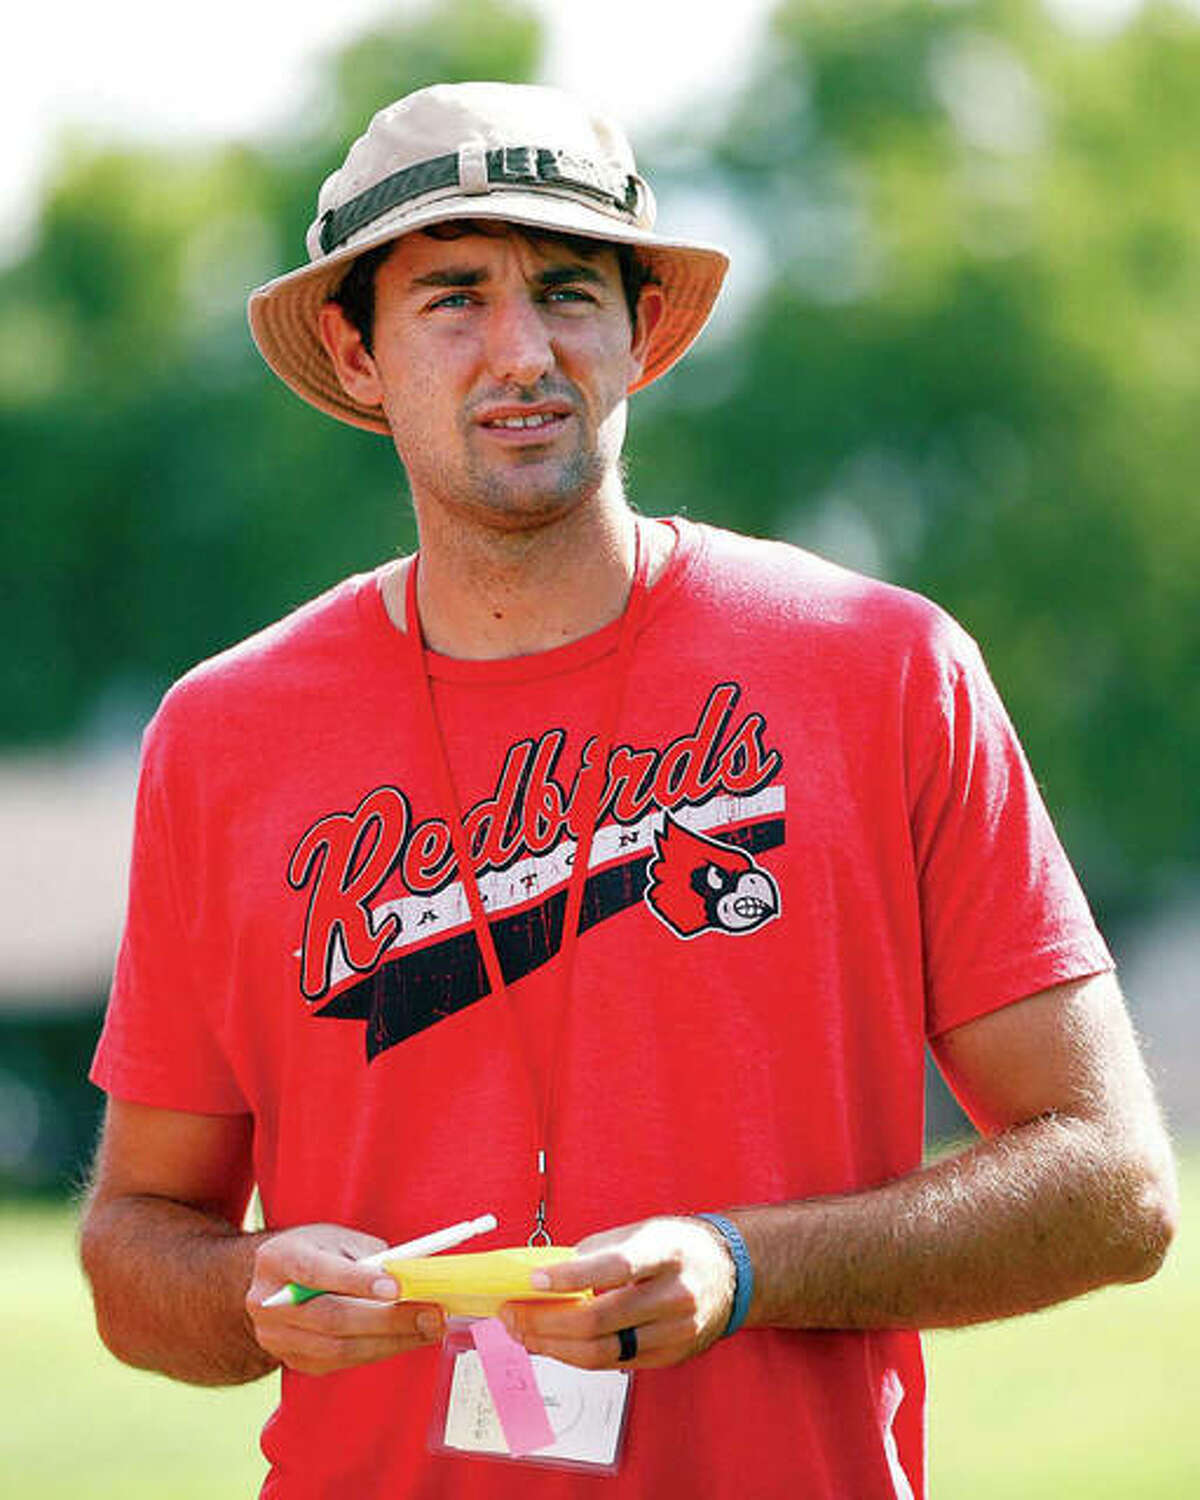 Alton High School's Robert Logan Invitational tennis tournament set for Saturday is named for the late Robert Logan, a former coach at AHS and player at Marquette Catholic and LCCC, who died in 2016 at the age of 30 from a rare form of liver cancer. the 10-team tournament will be played at various sites around the Riverbend.